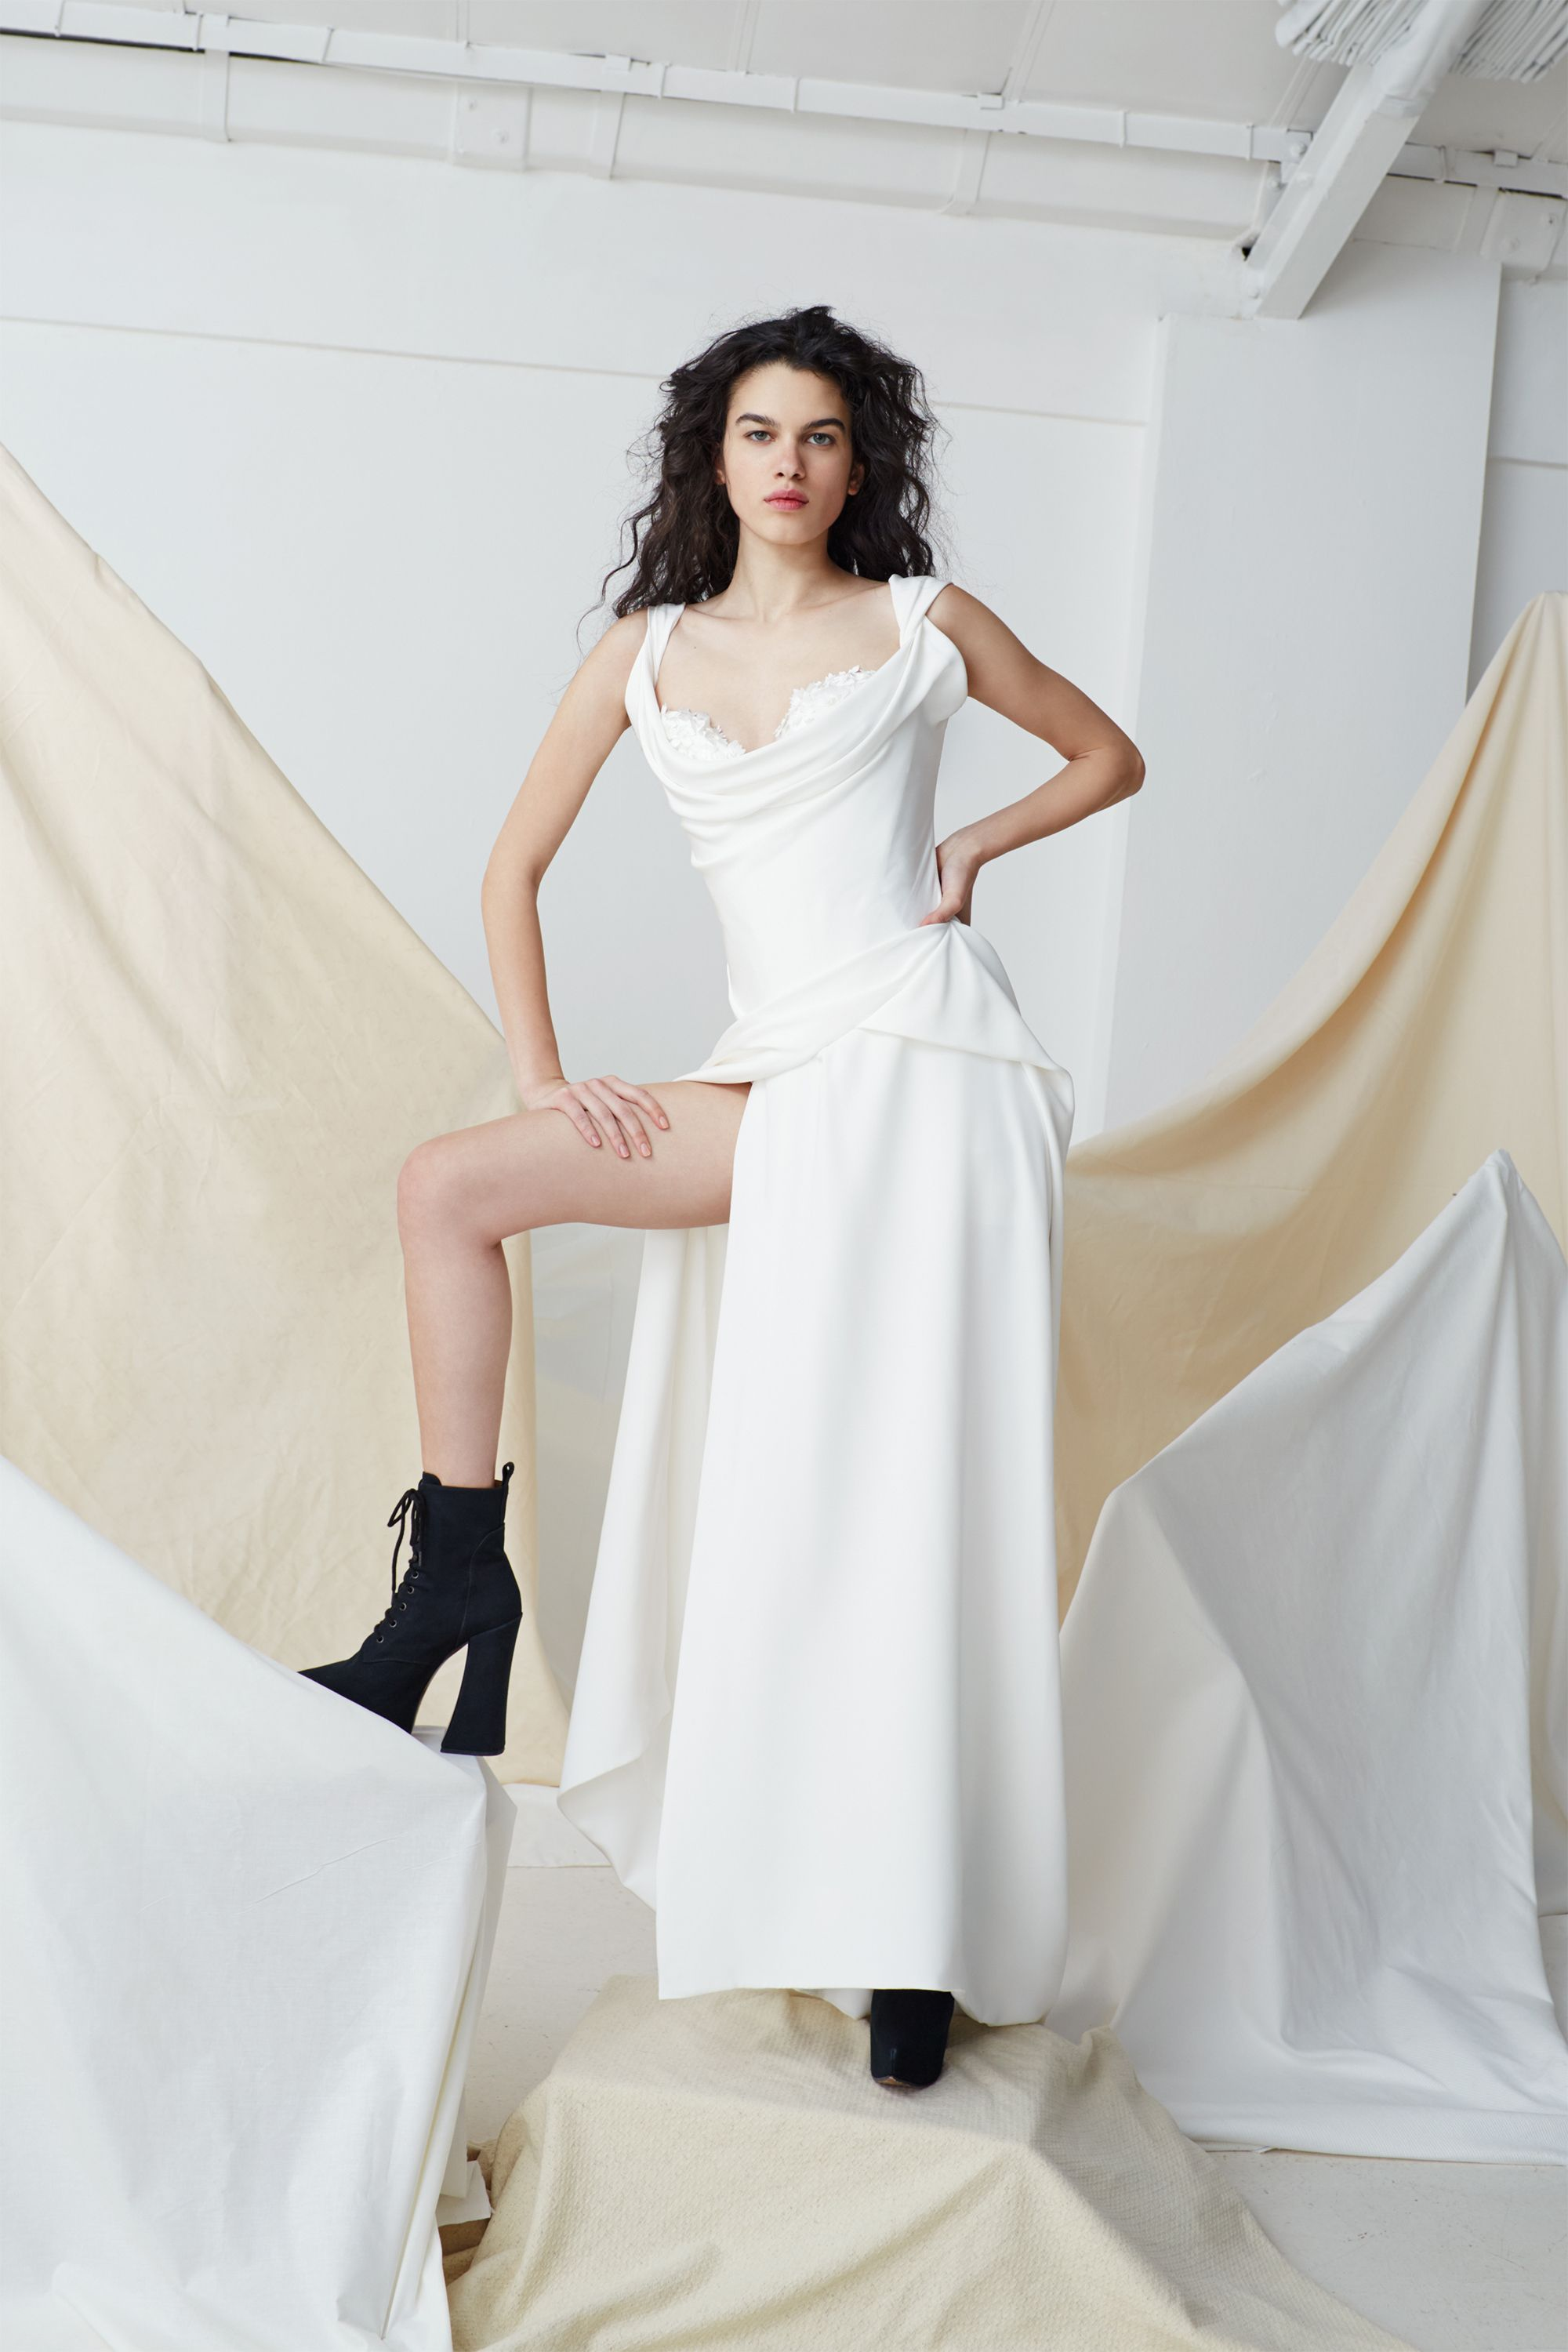 Exclusive Vivienne Westwood Bridal Collection Is Now Available In New York City See All The Styles From